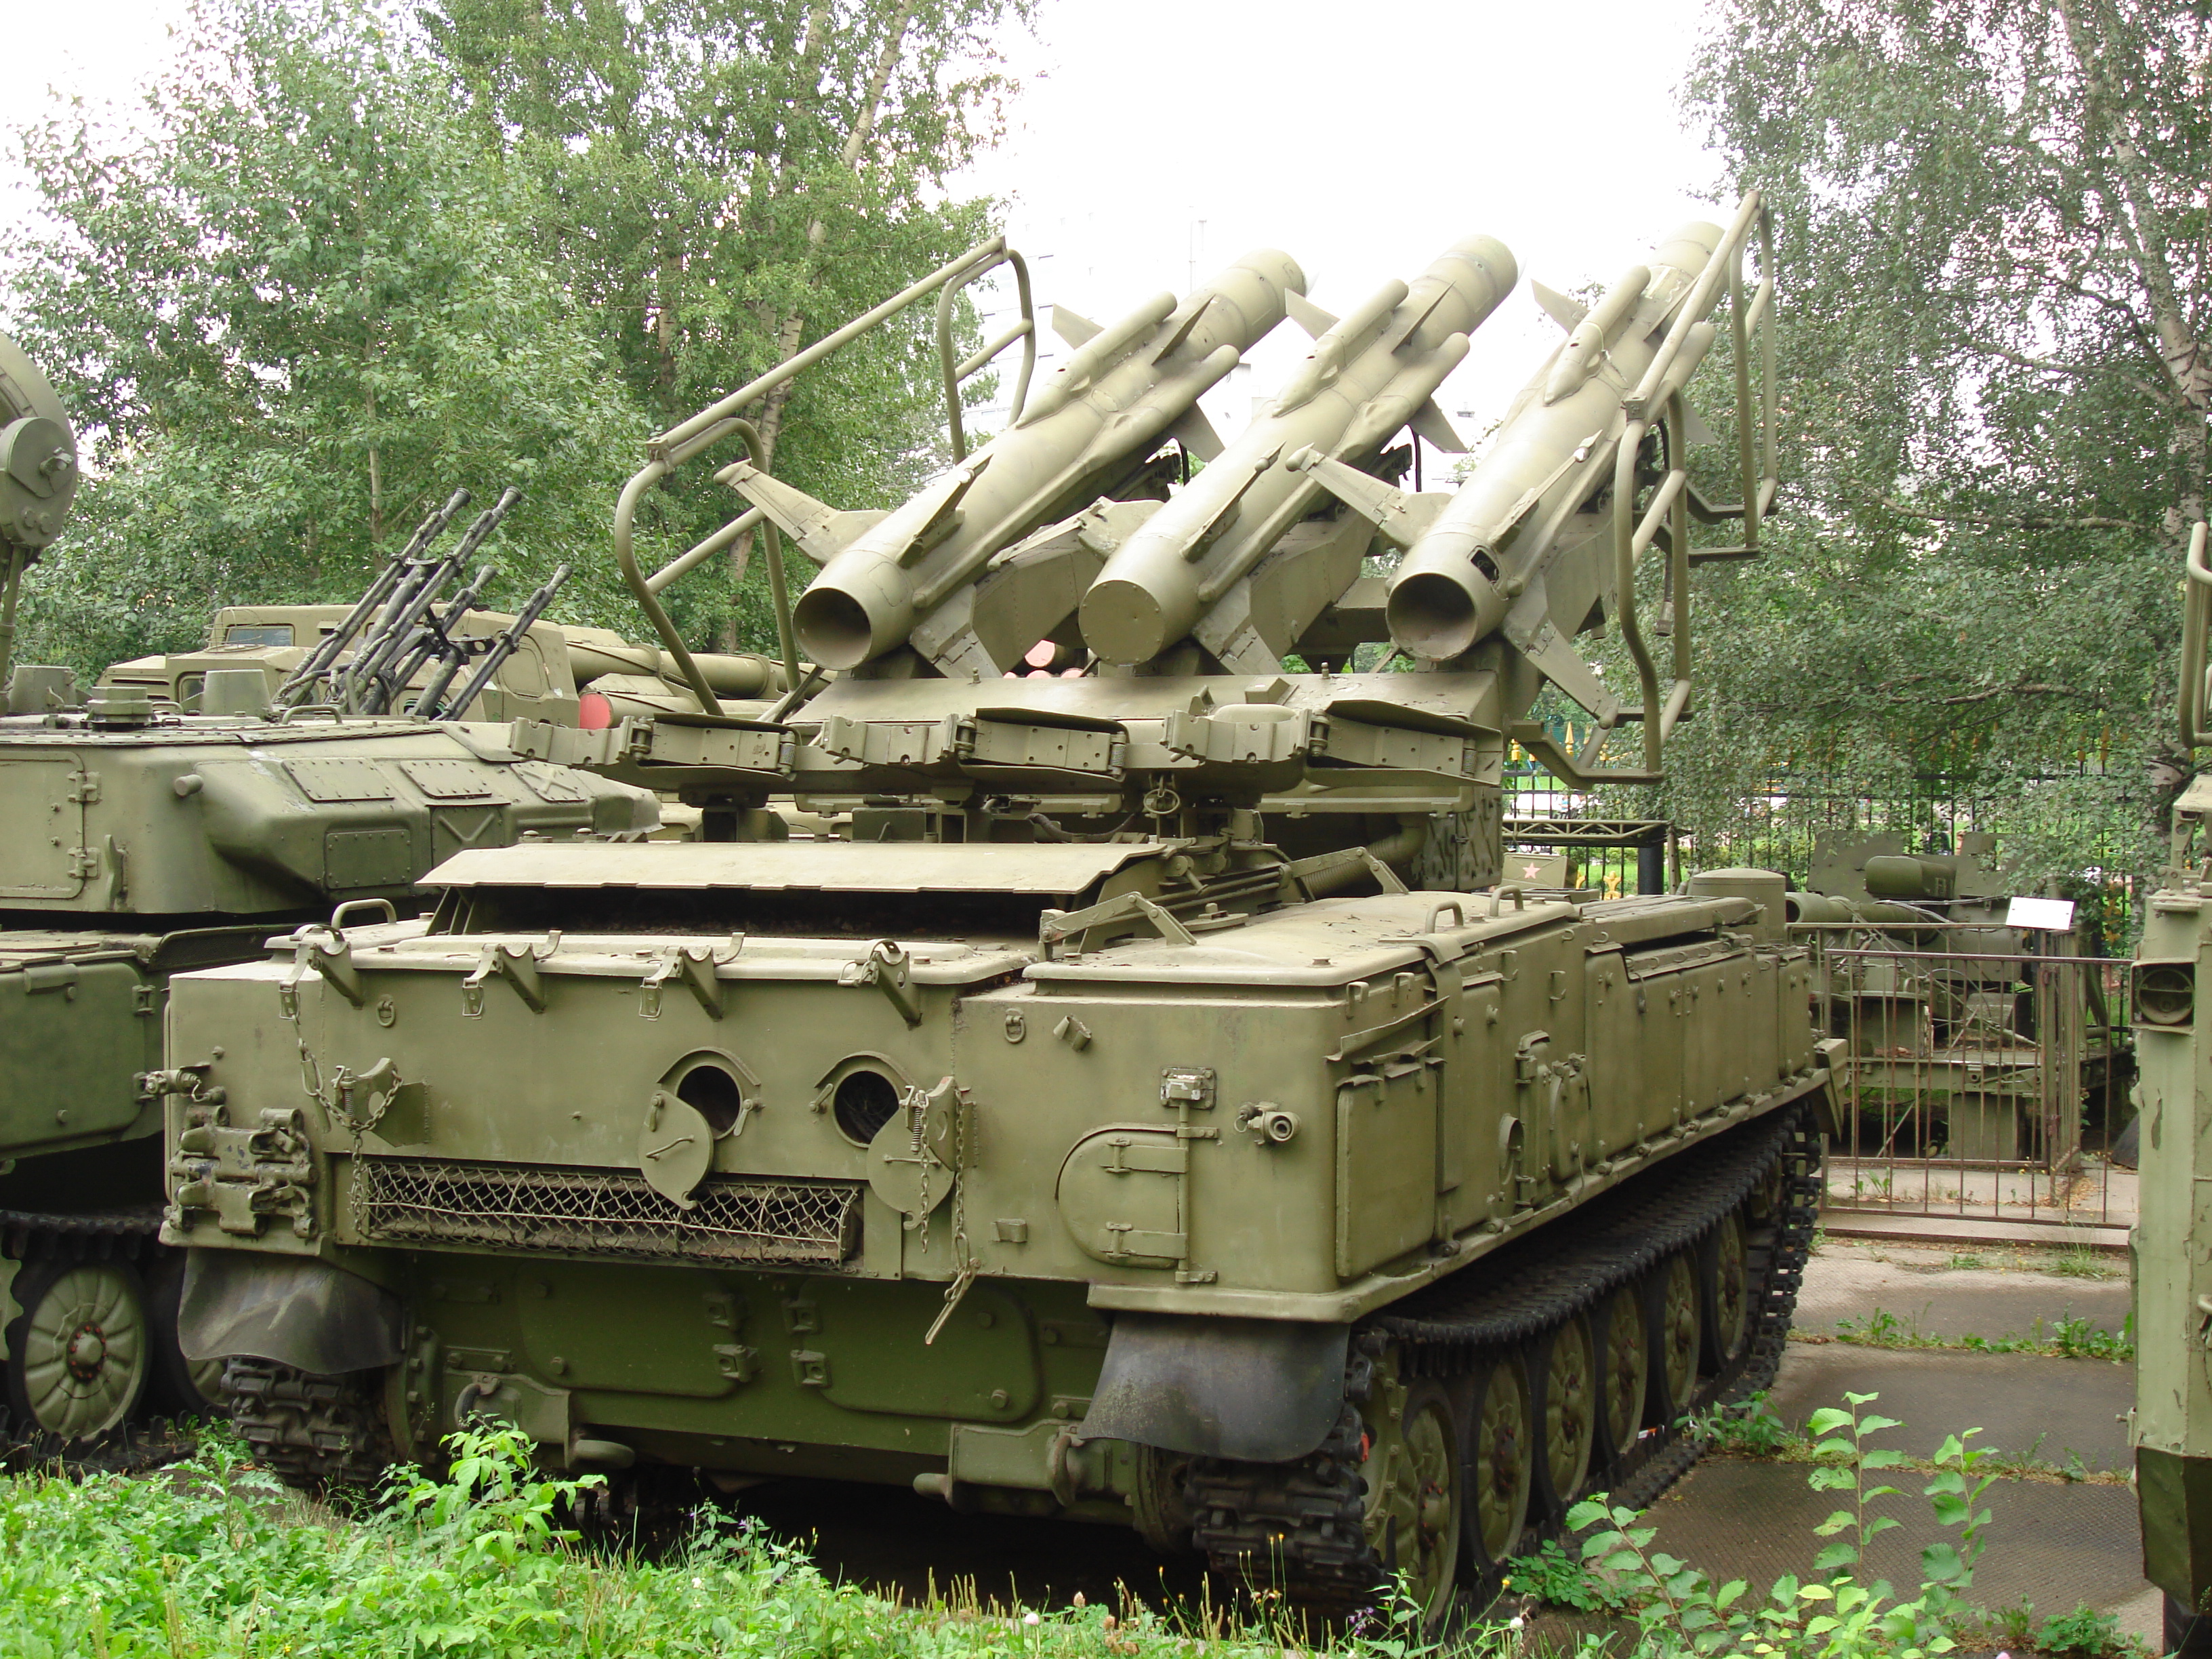 2K12 KUB 2K12_Kub_backside_at_Central_Museum_of_Russian_Armed_Forces